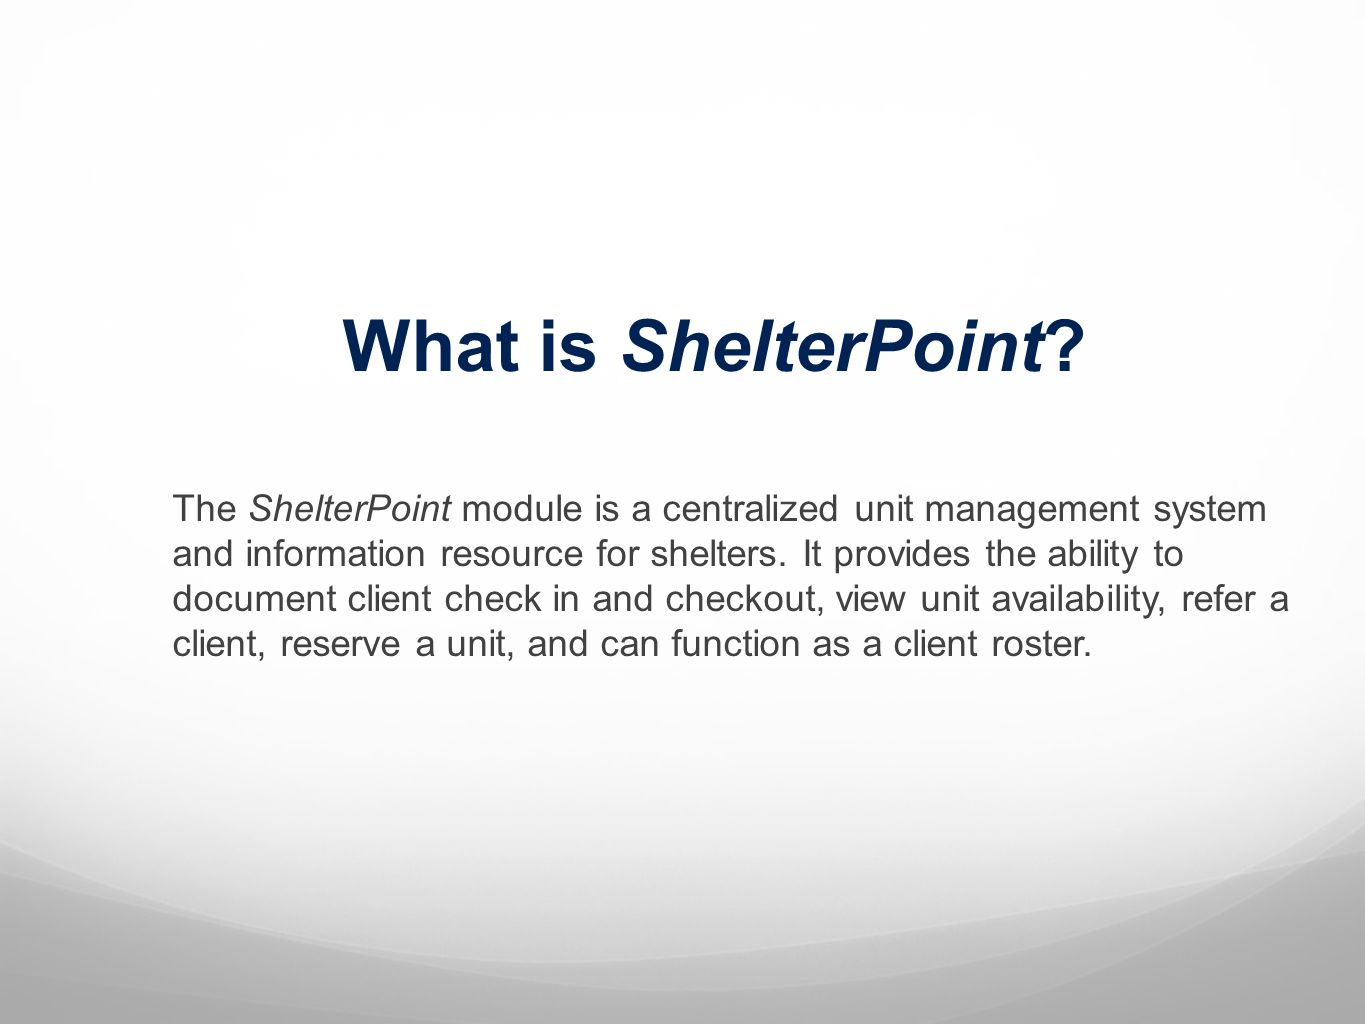 What is ShelterPoint